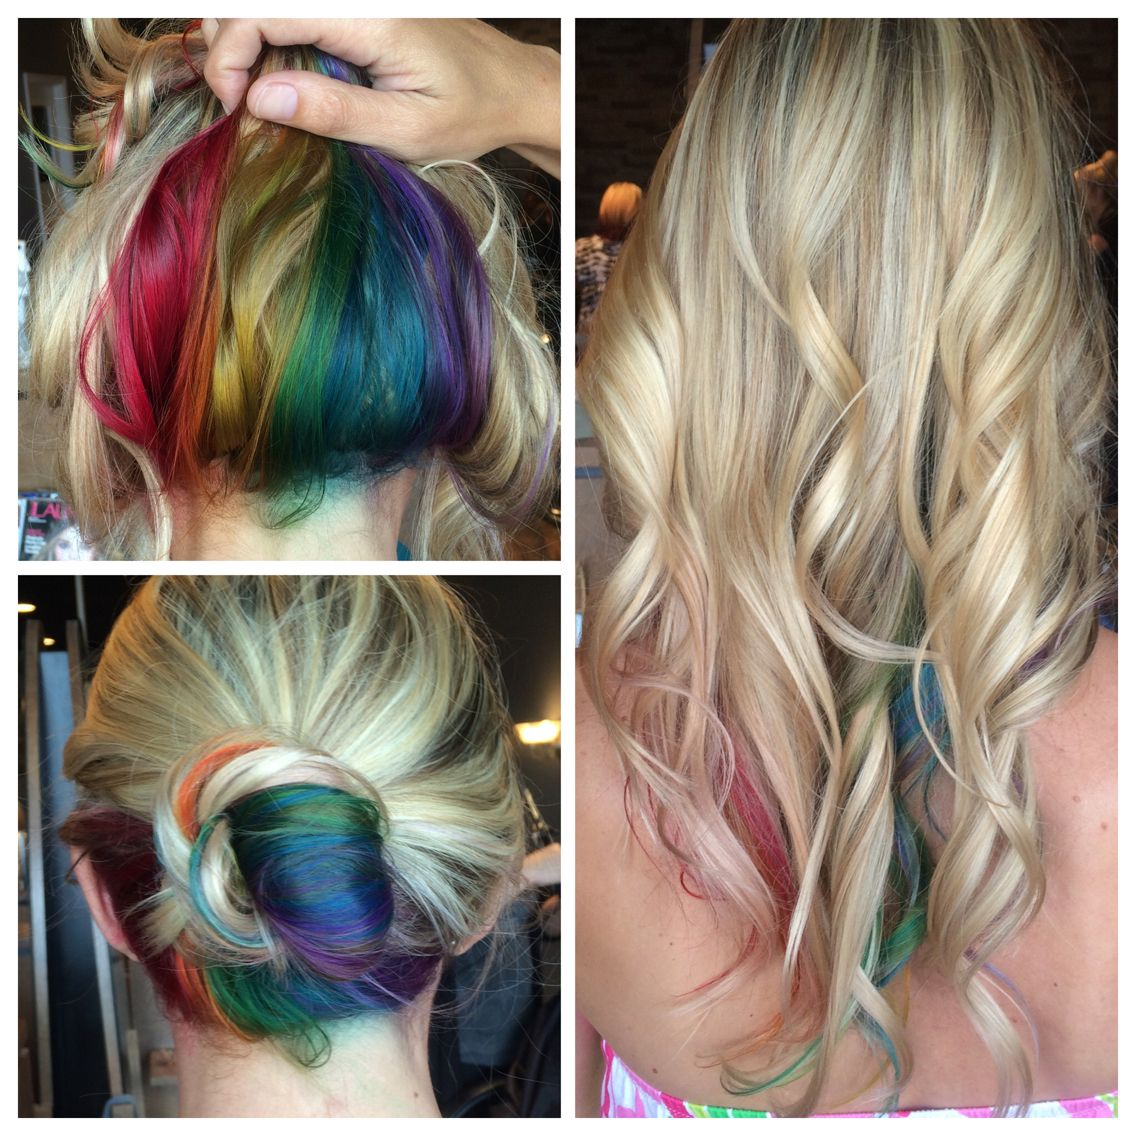 Rainbow Hair Peekaboo Hair Pinterest Hair Rainbow Hair And